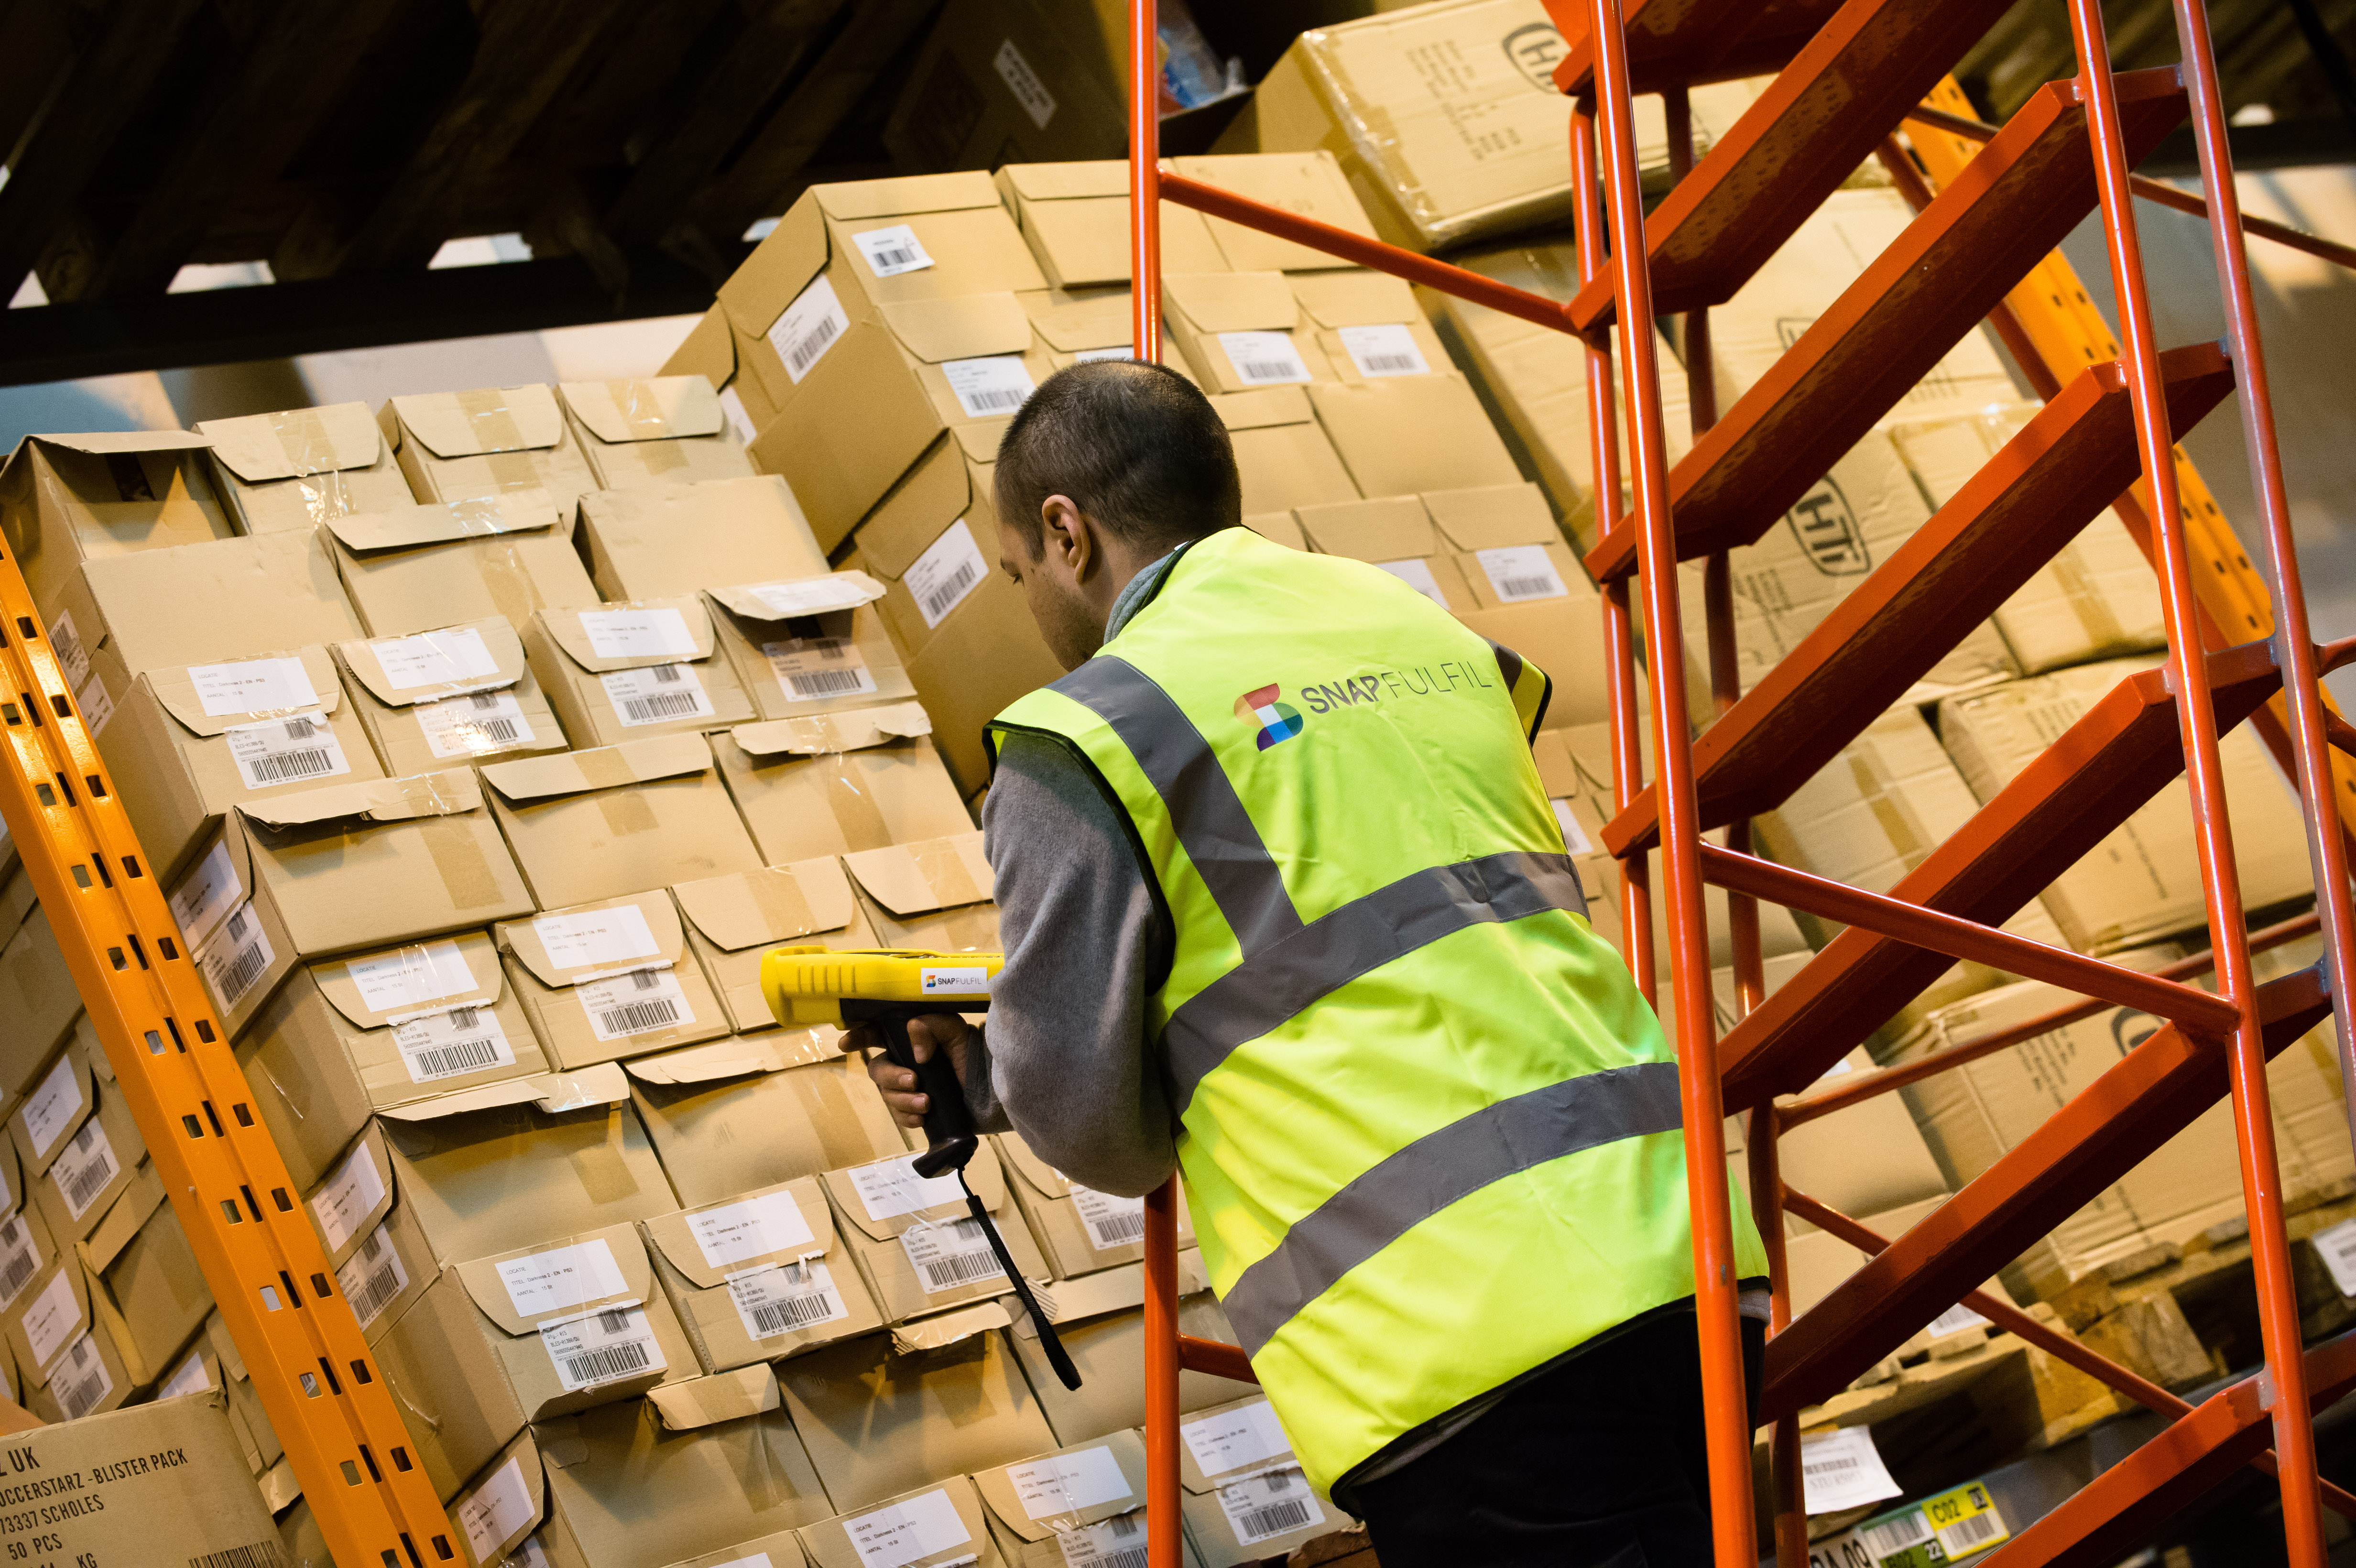 SnapFulfil publishes top five tips for winning at warehousing